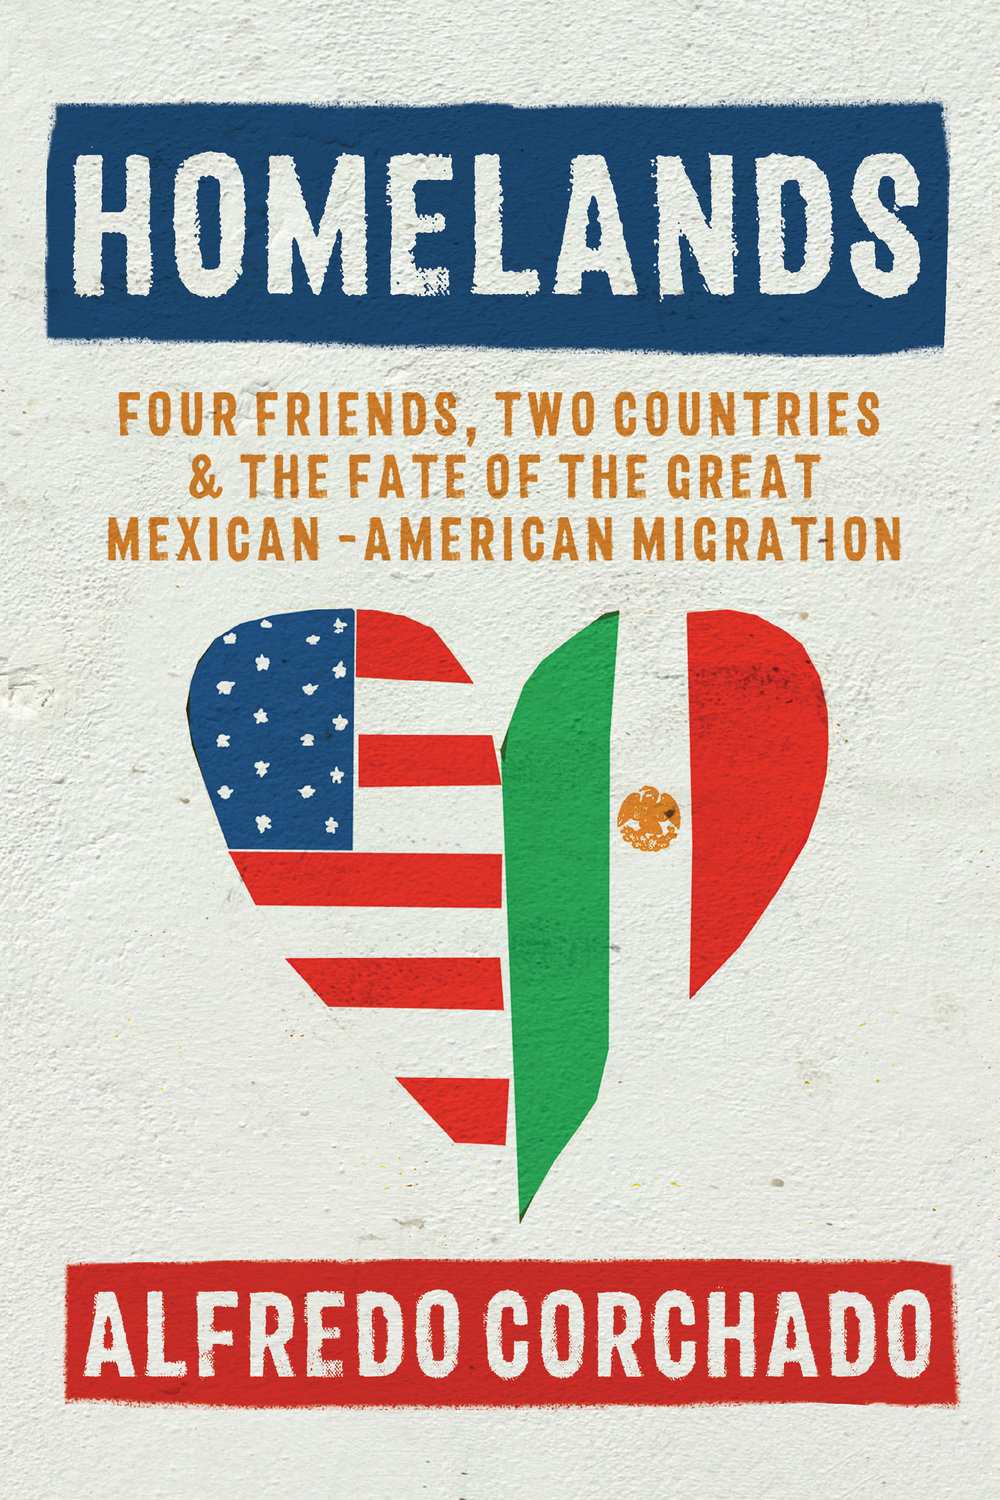 Homelands jacket art 9781632865540.jpg